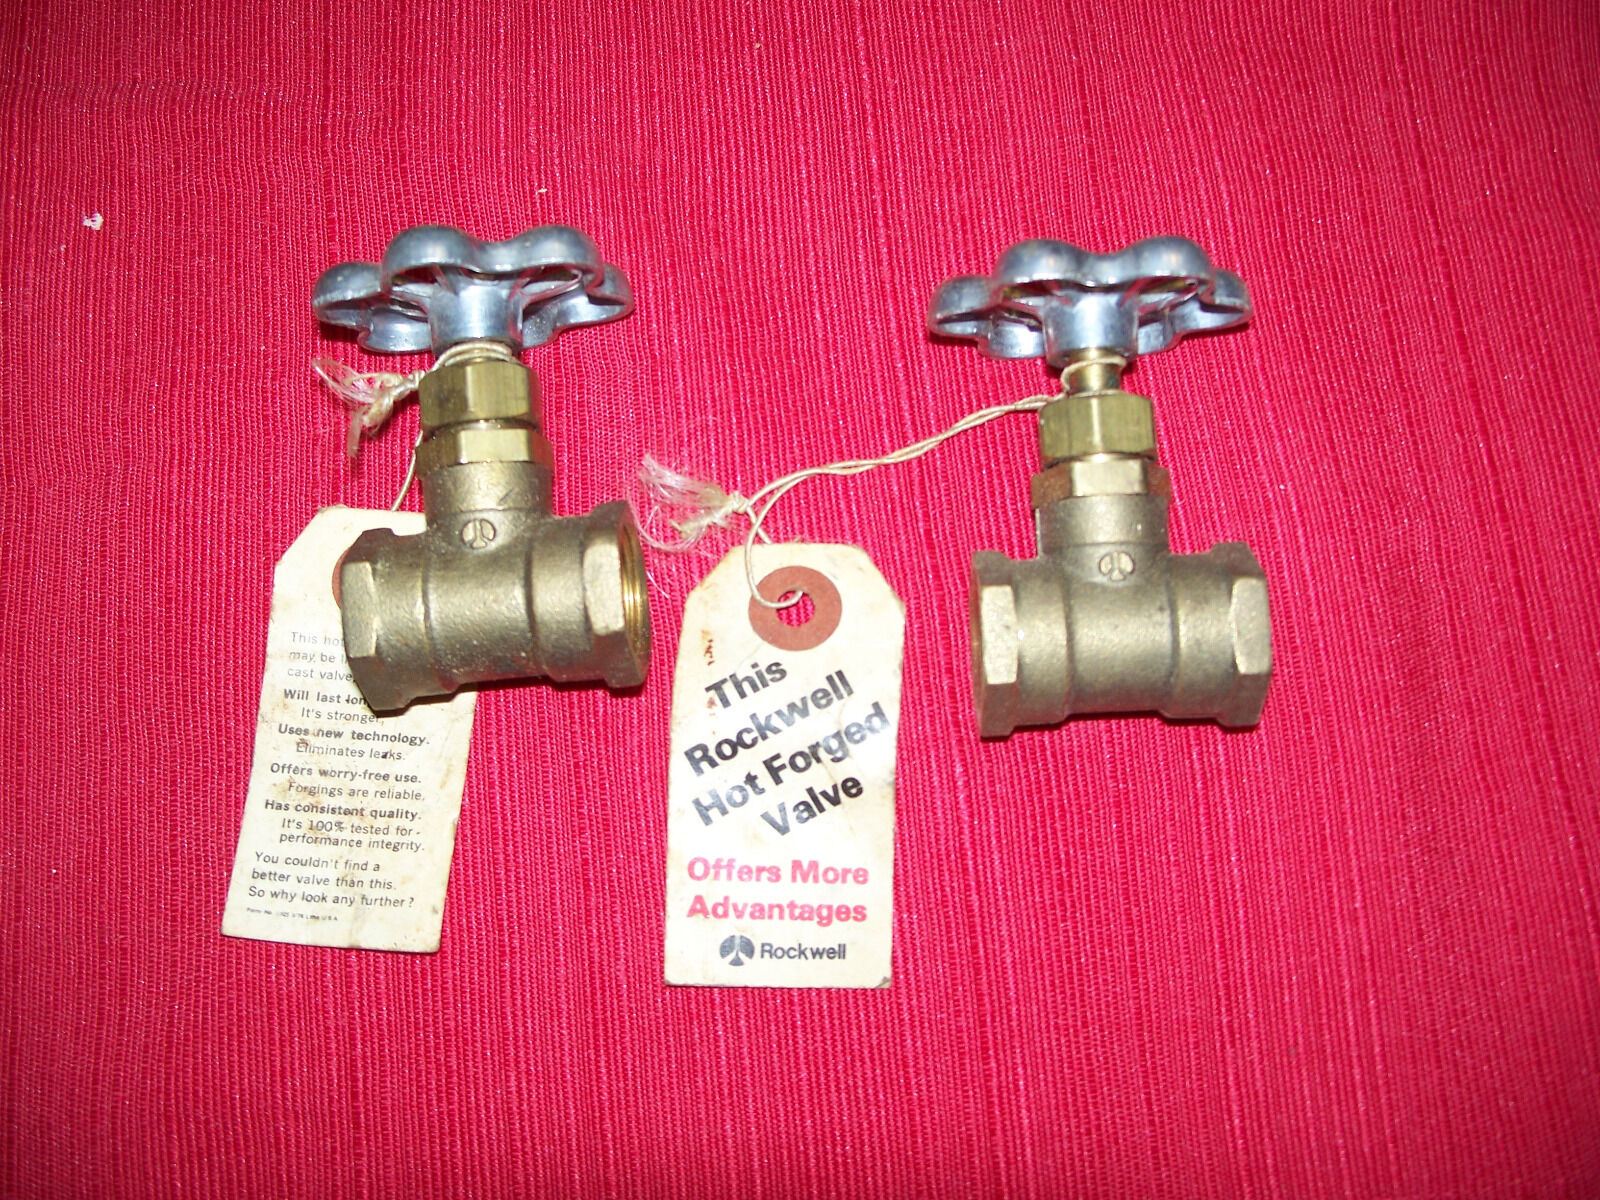 2 Vintage Brass 3/4 inch Valve Steampunk New Rockwell with Tags